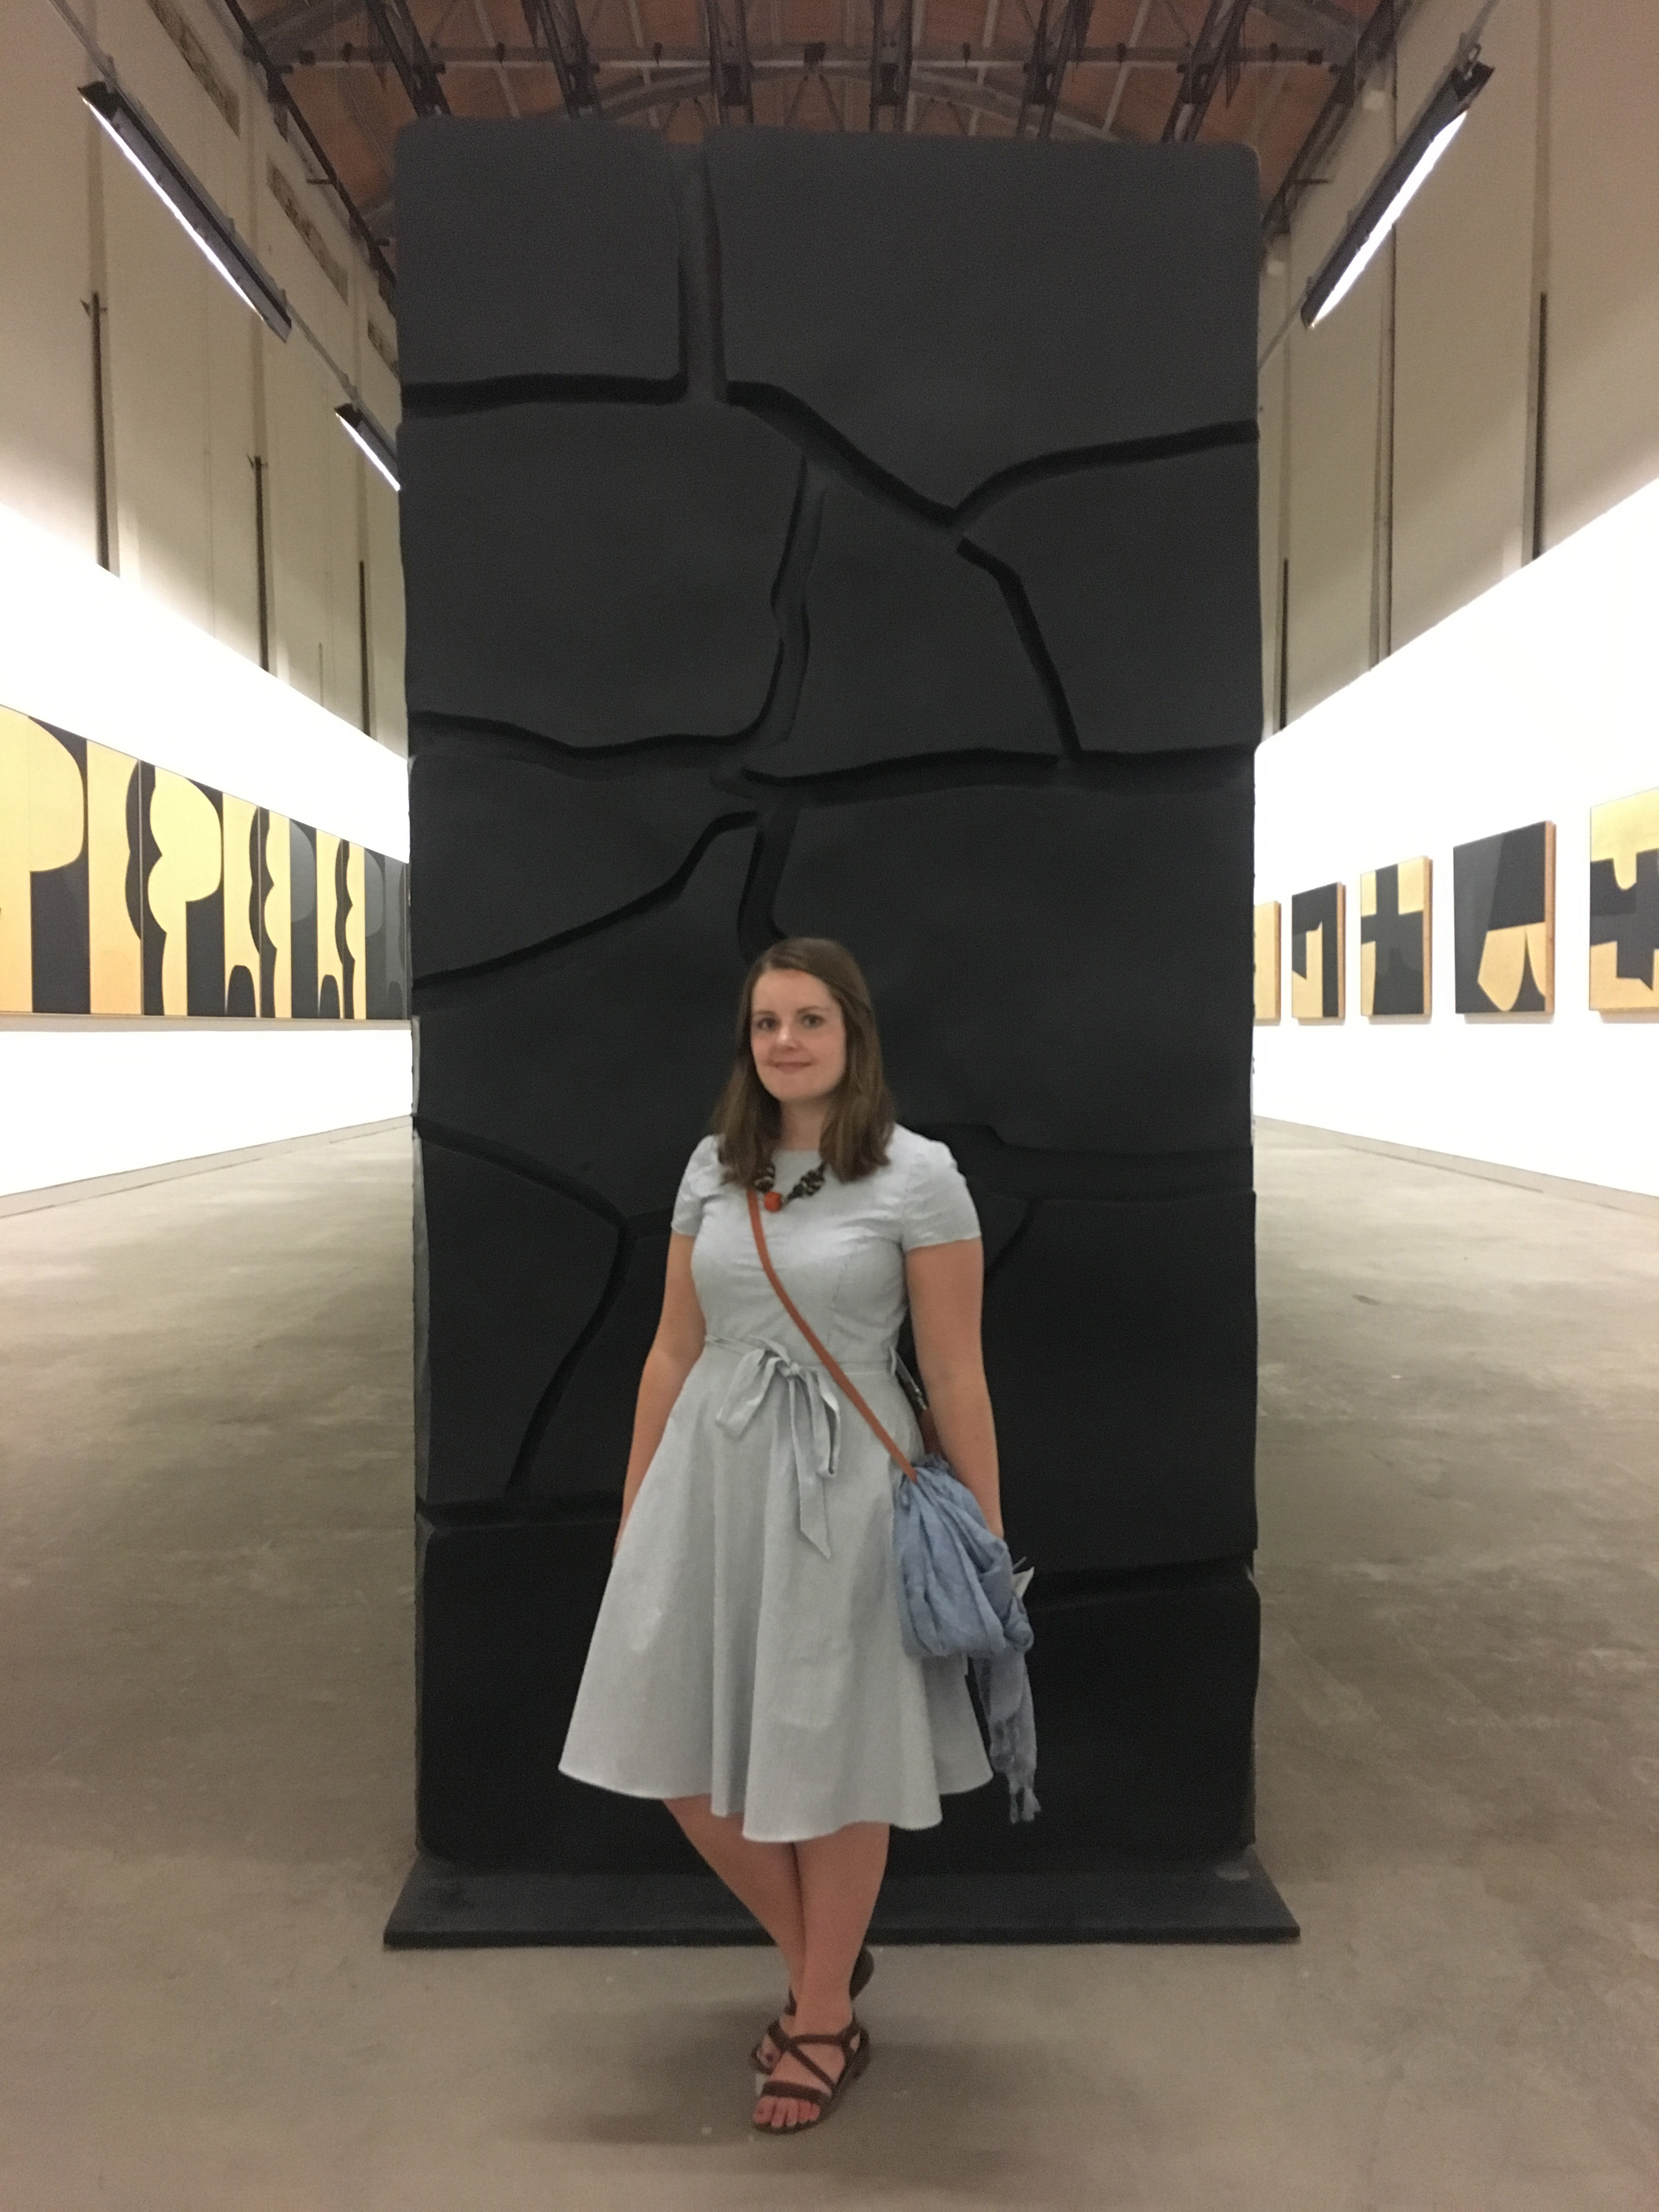 Elspeth Jackson in the Burri exhibition in Italy